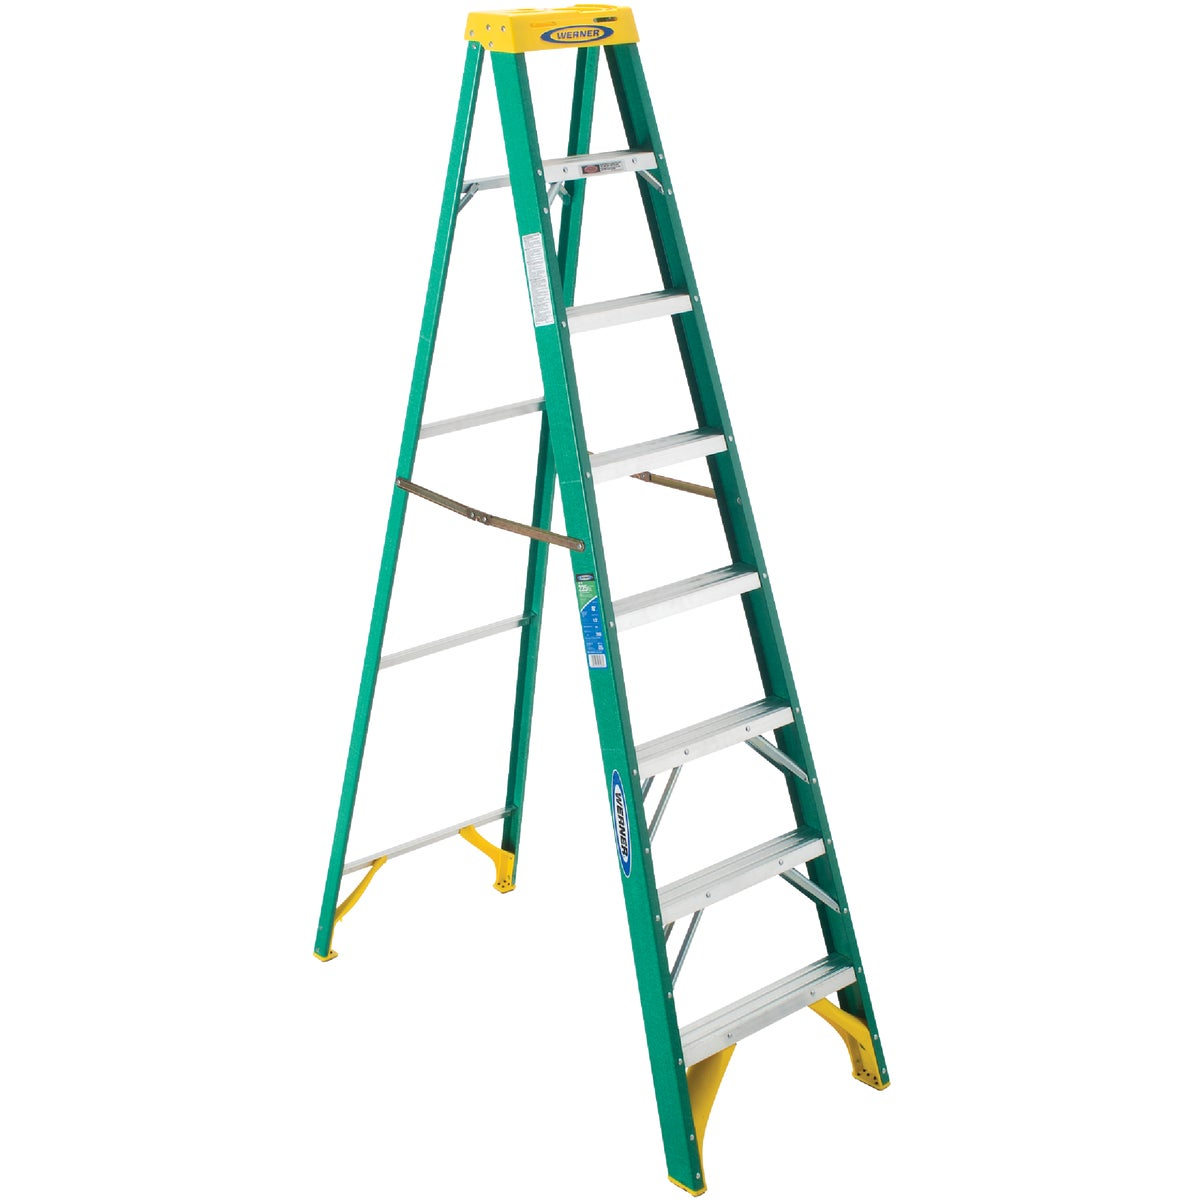 T-2 8' FBGL STEPLADDER - 5908 by Werner Co